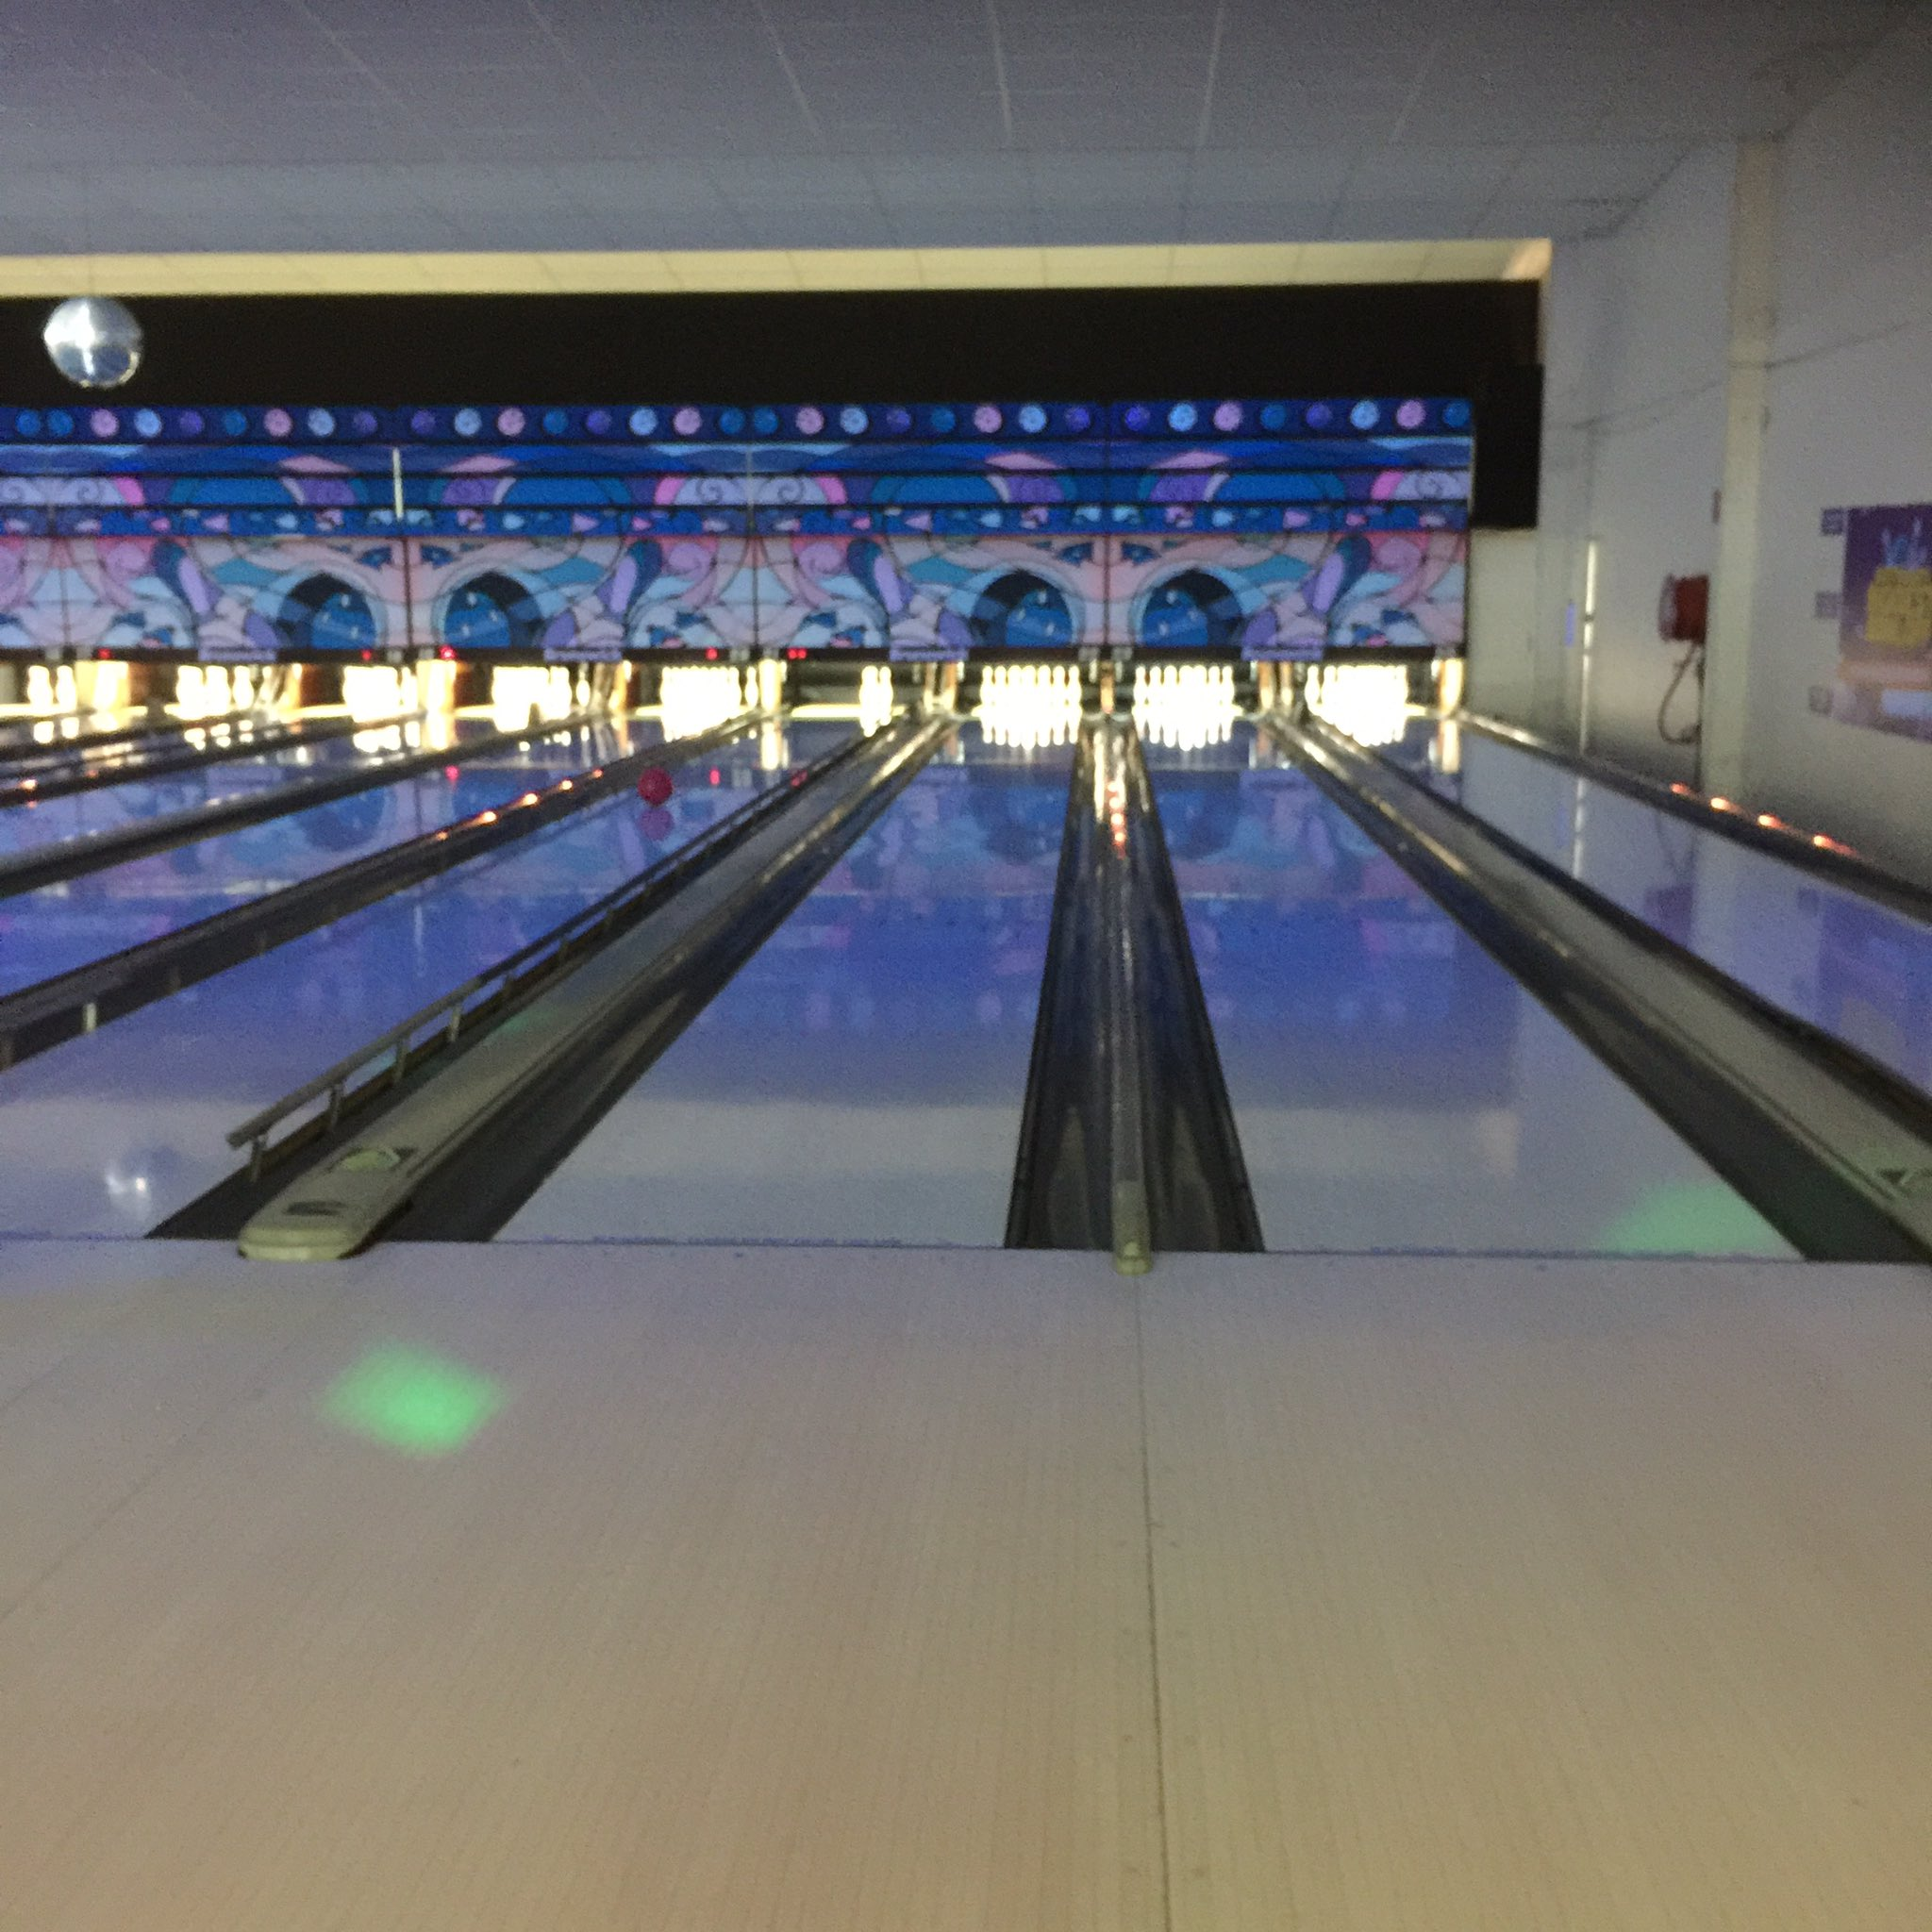 Anna from Australia here! Am fighting a bowling battle as I type this! #WeirdEd https://t.co/4262EfBnnI